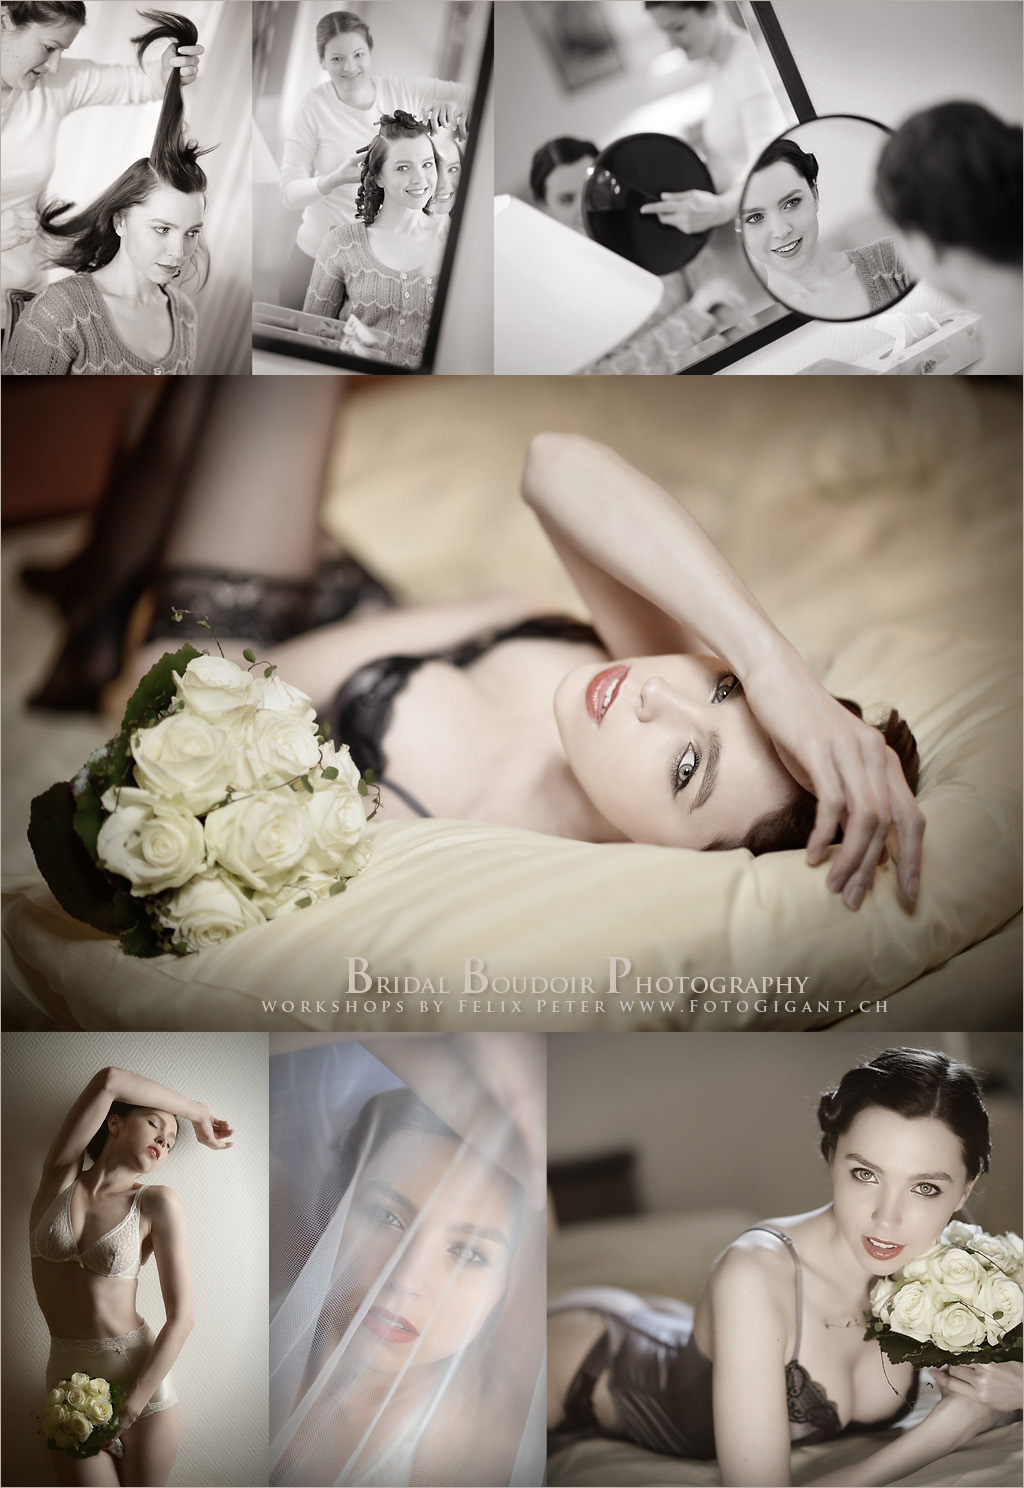 Bridal-Boudoir_Photography.jpg